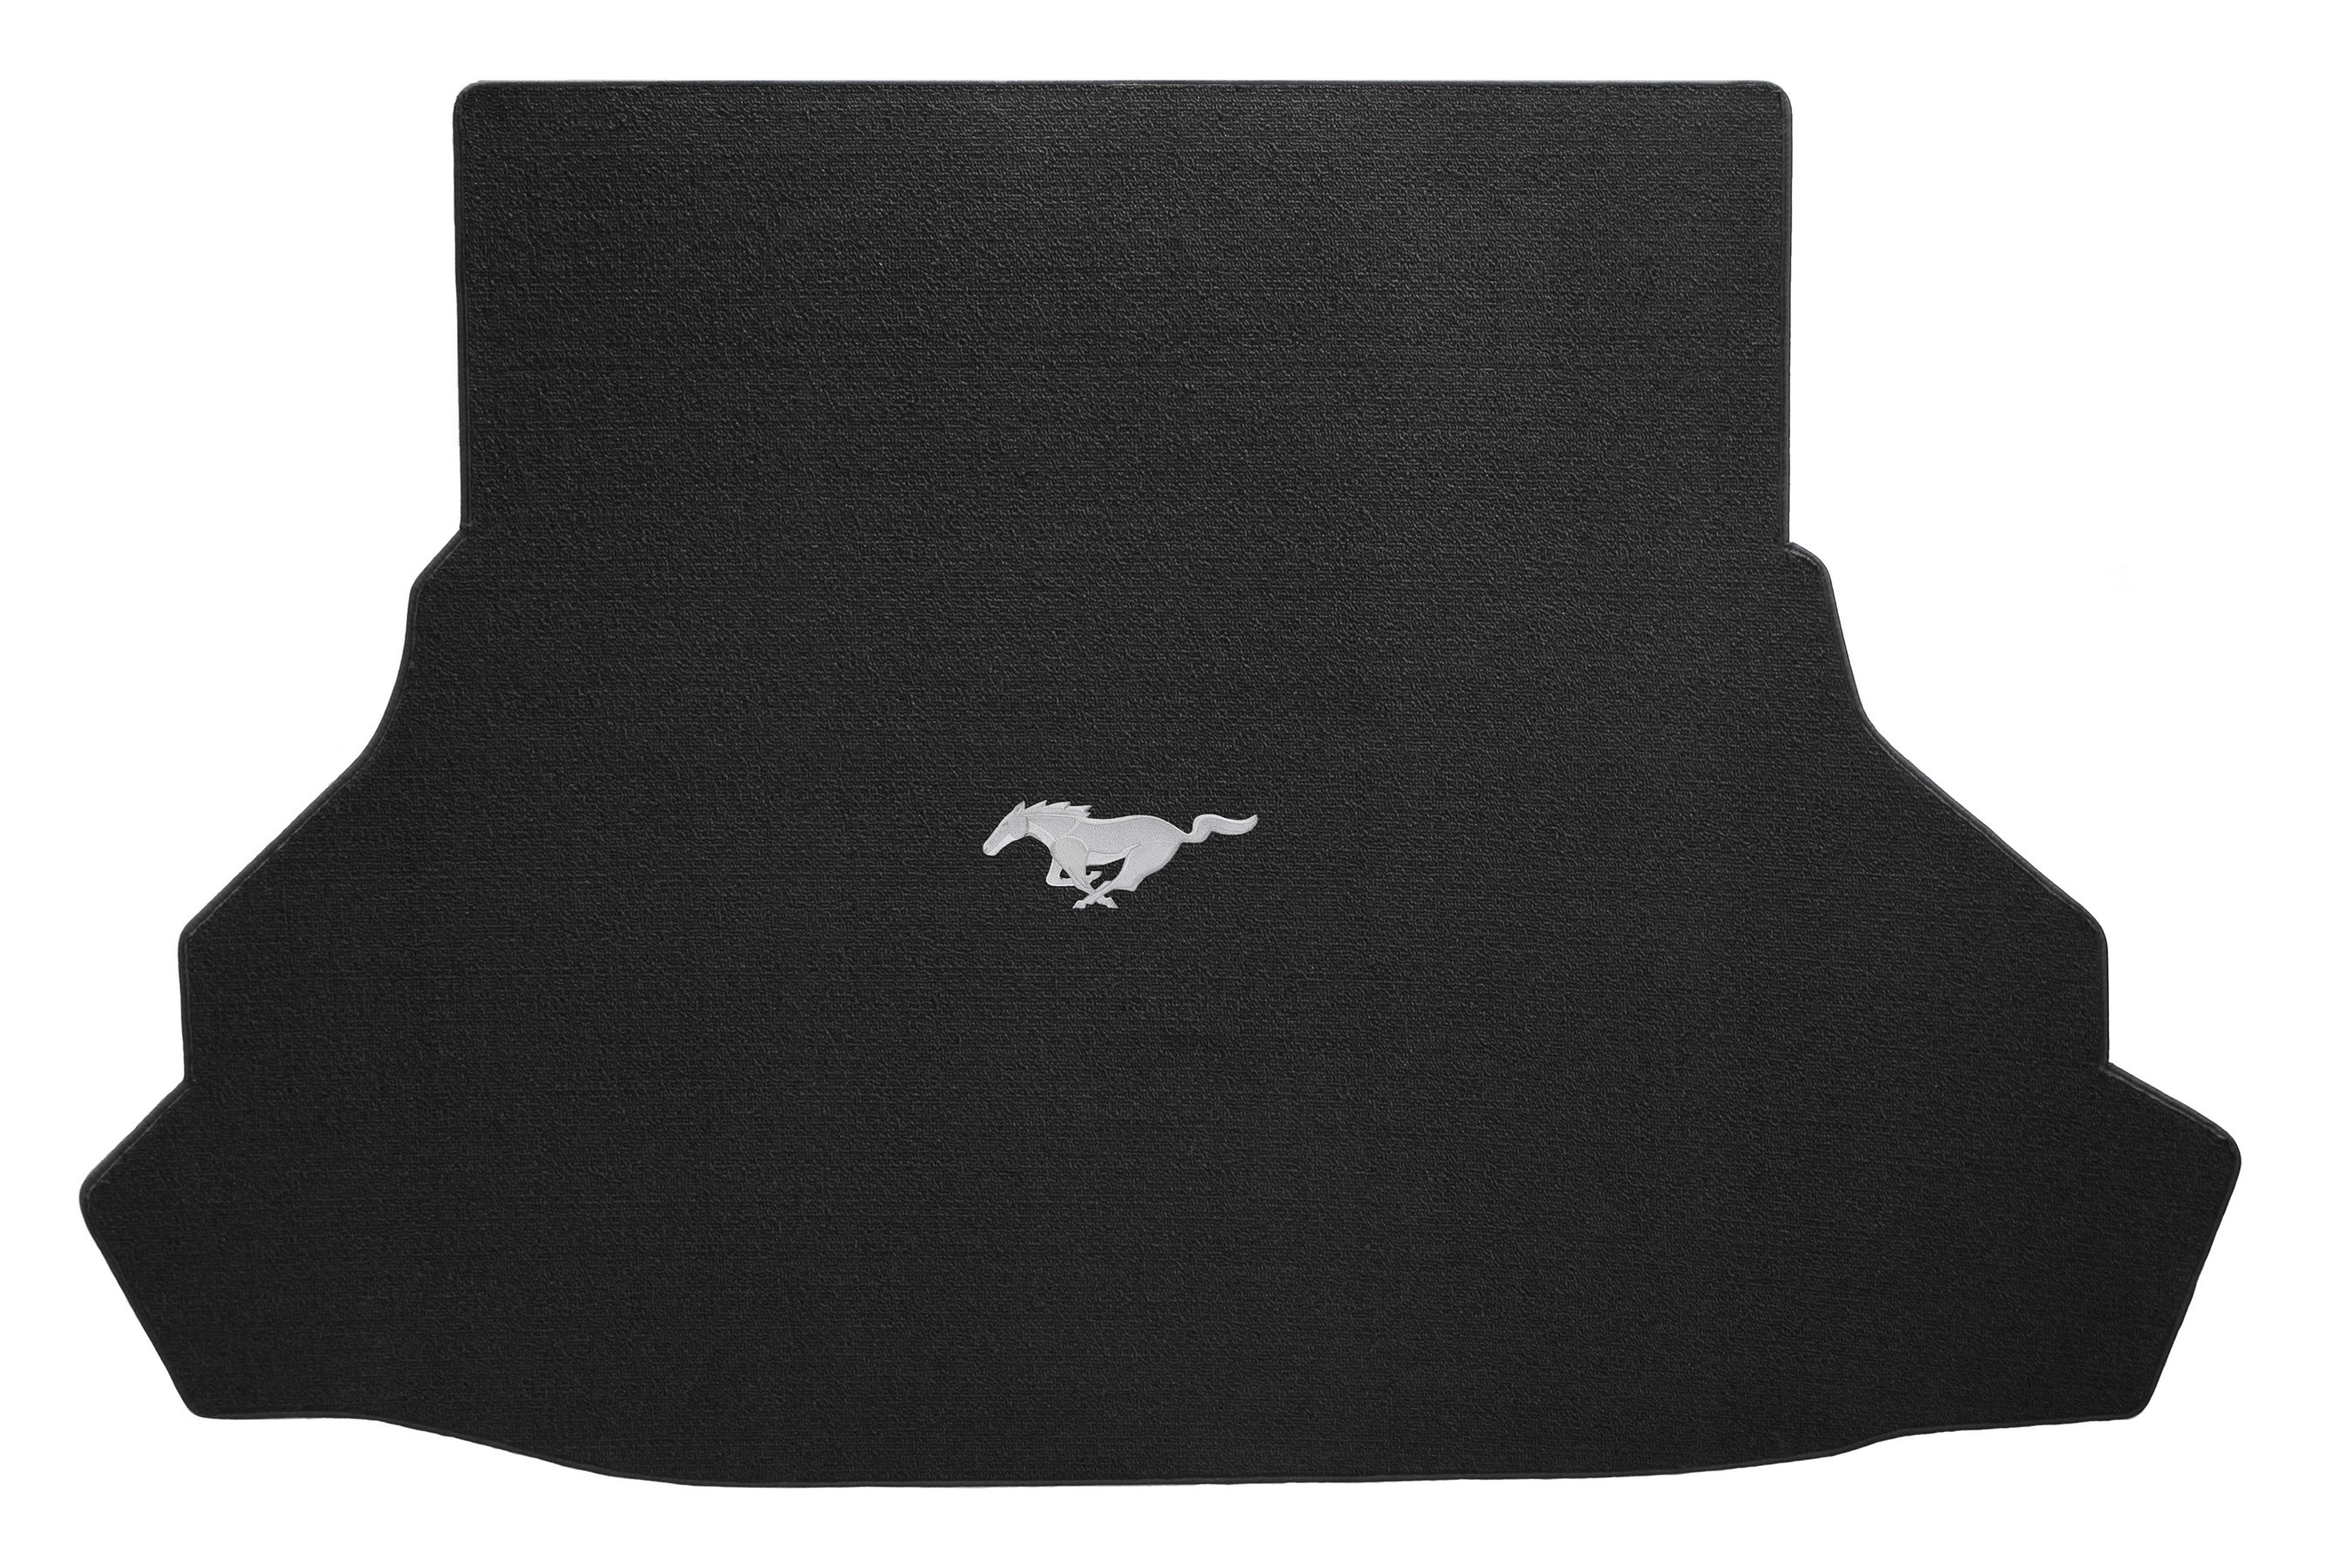 2015 Ford Mustang Lloyd Rear Trunk Cargo Mat Black w/ Running Horse Emblem Embroidery